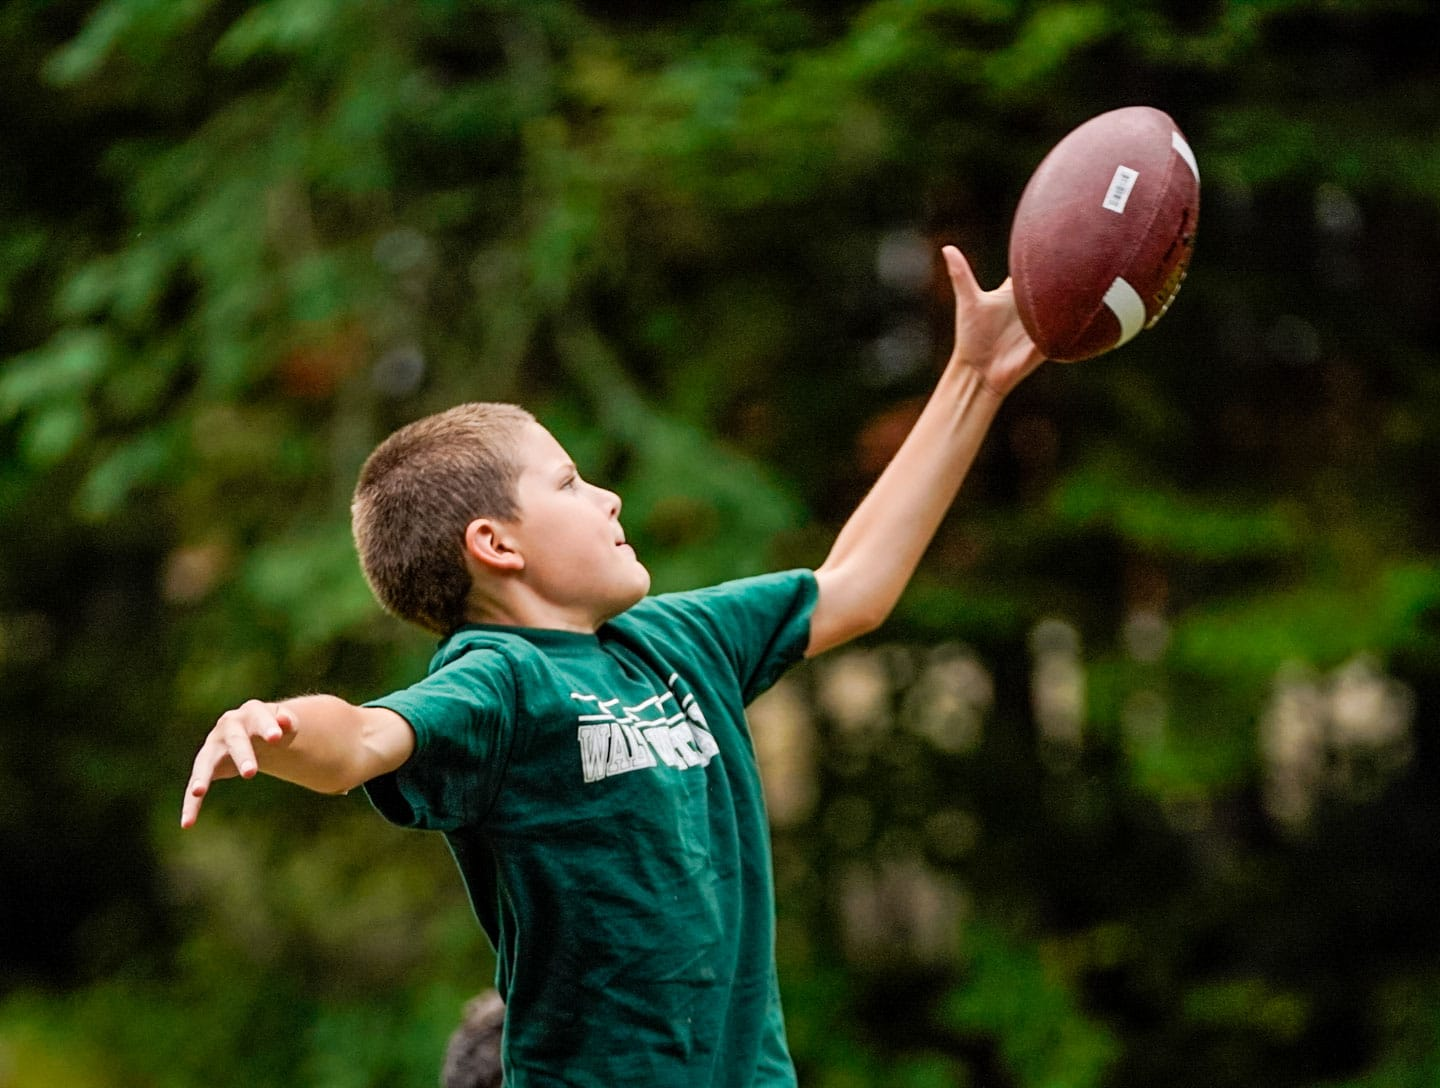 a young kid catching a football one handed